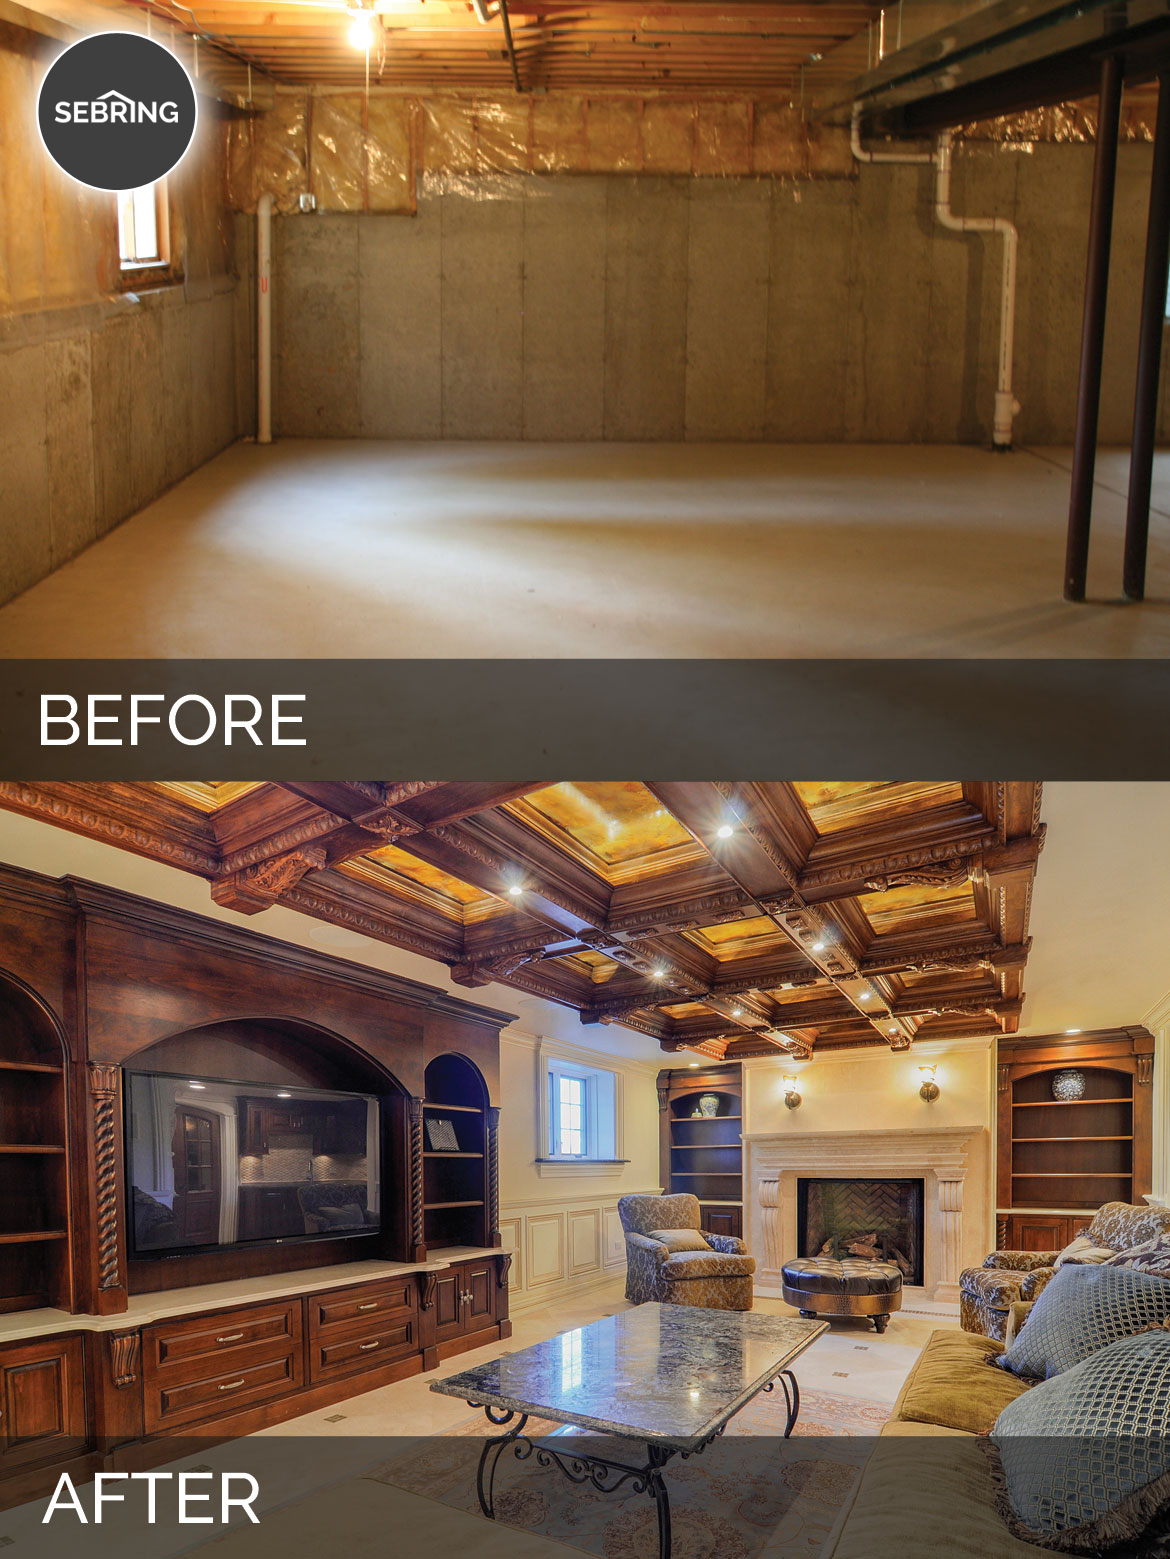 Steve & Ann's Basement Before & After Pictures